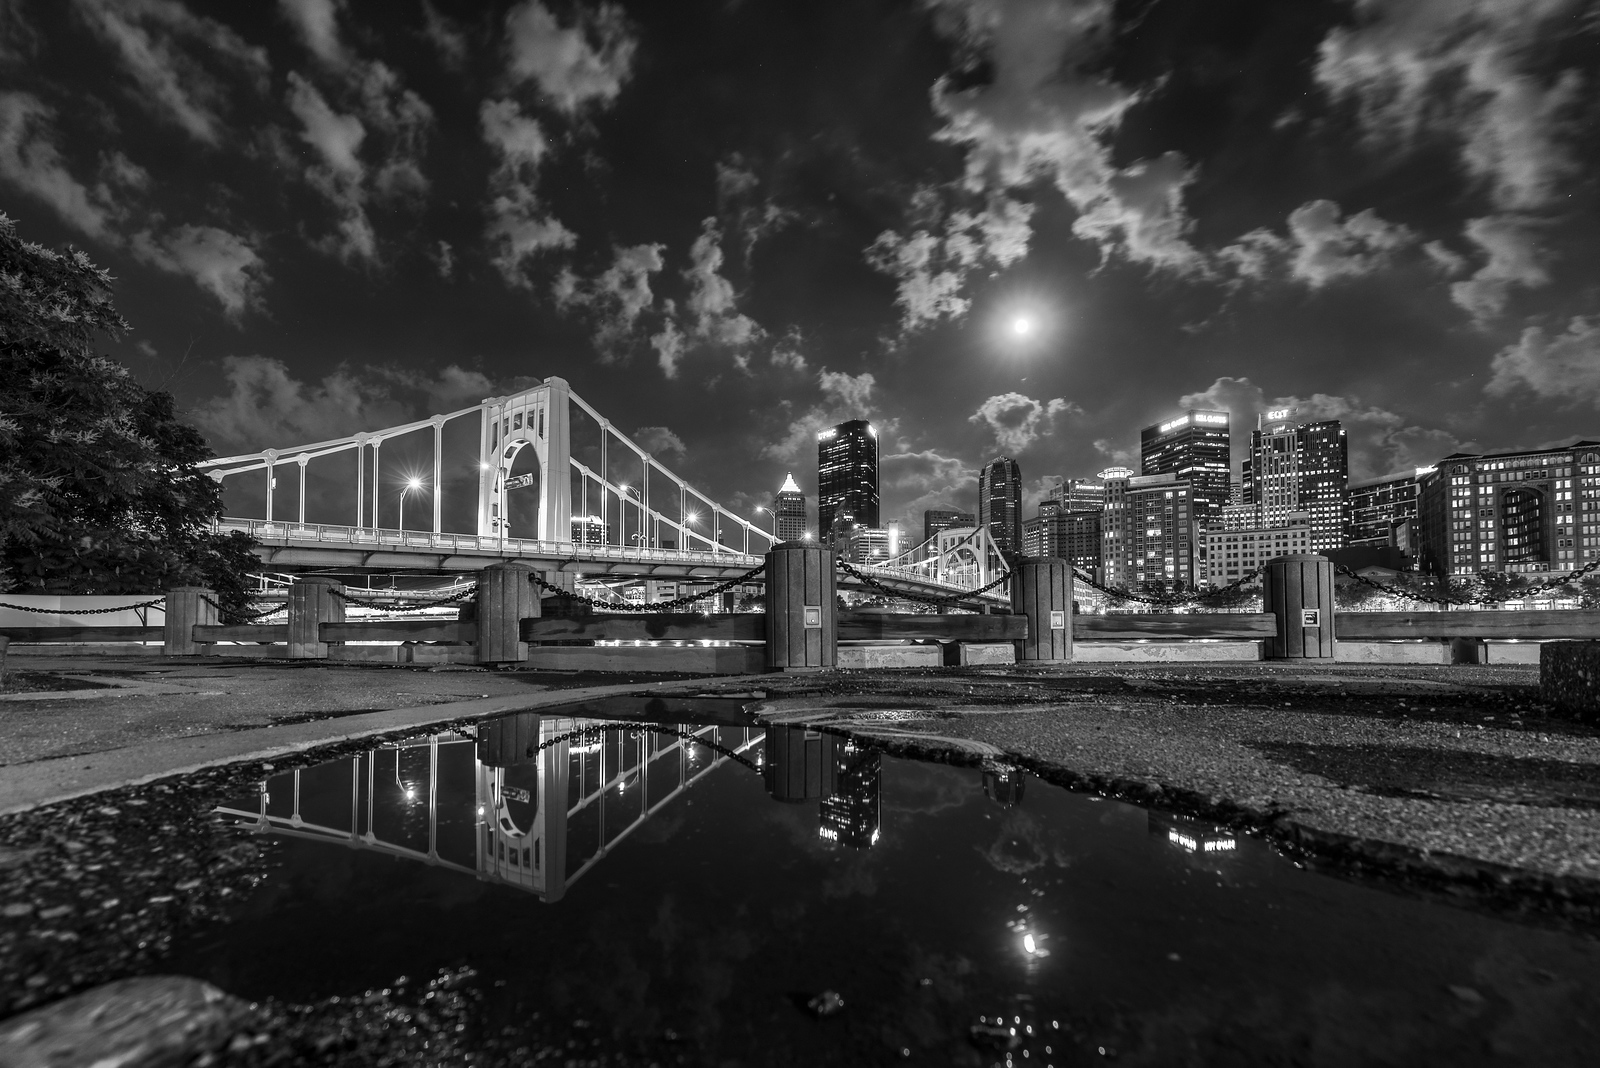 """""""Waiting for Jason"""" - Pittsburgh, North Shore   Recommended Print sizes*:  4x6      8x12     12x18     16x24     20x30     24x36 *When ordering other sizes make sure to adjust the cropping at checkout*  © JP Diroll 2014"""